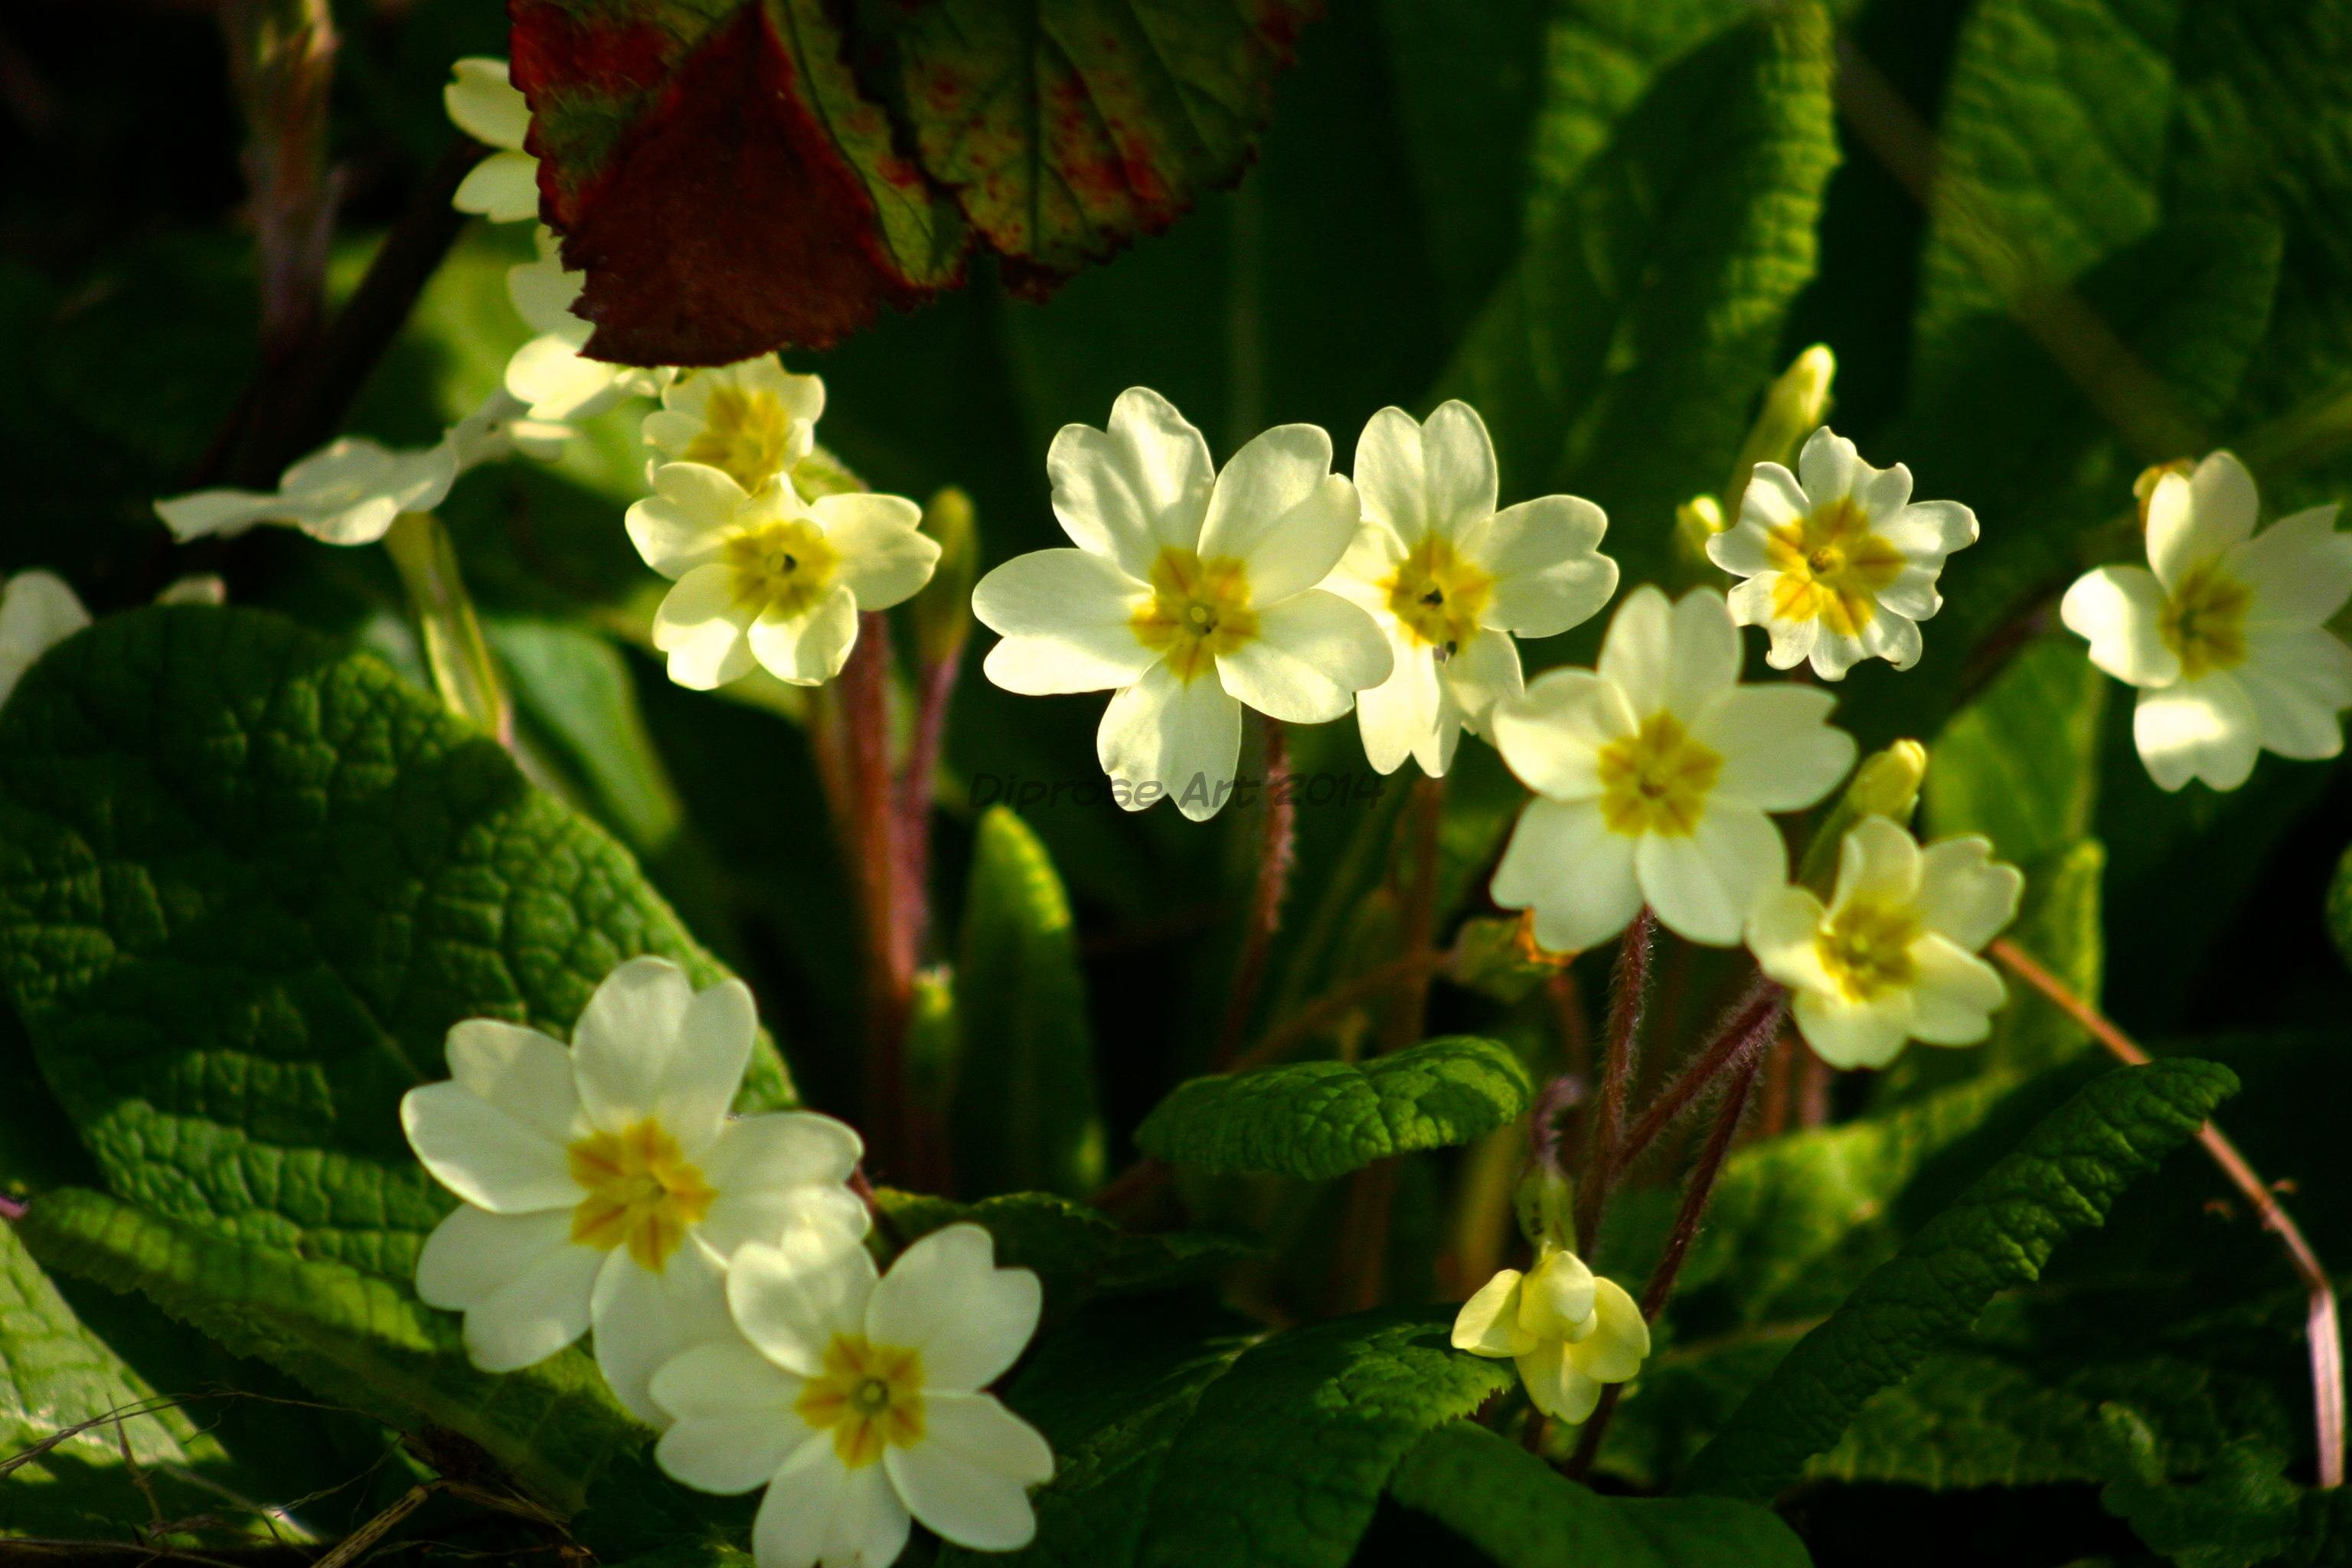 When I see the first wild primroses peeping through it makes me think that Spring is really on it's way